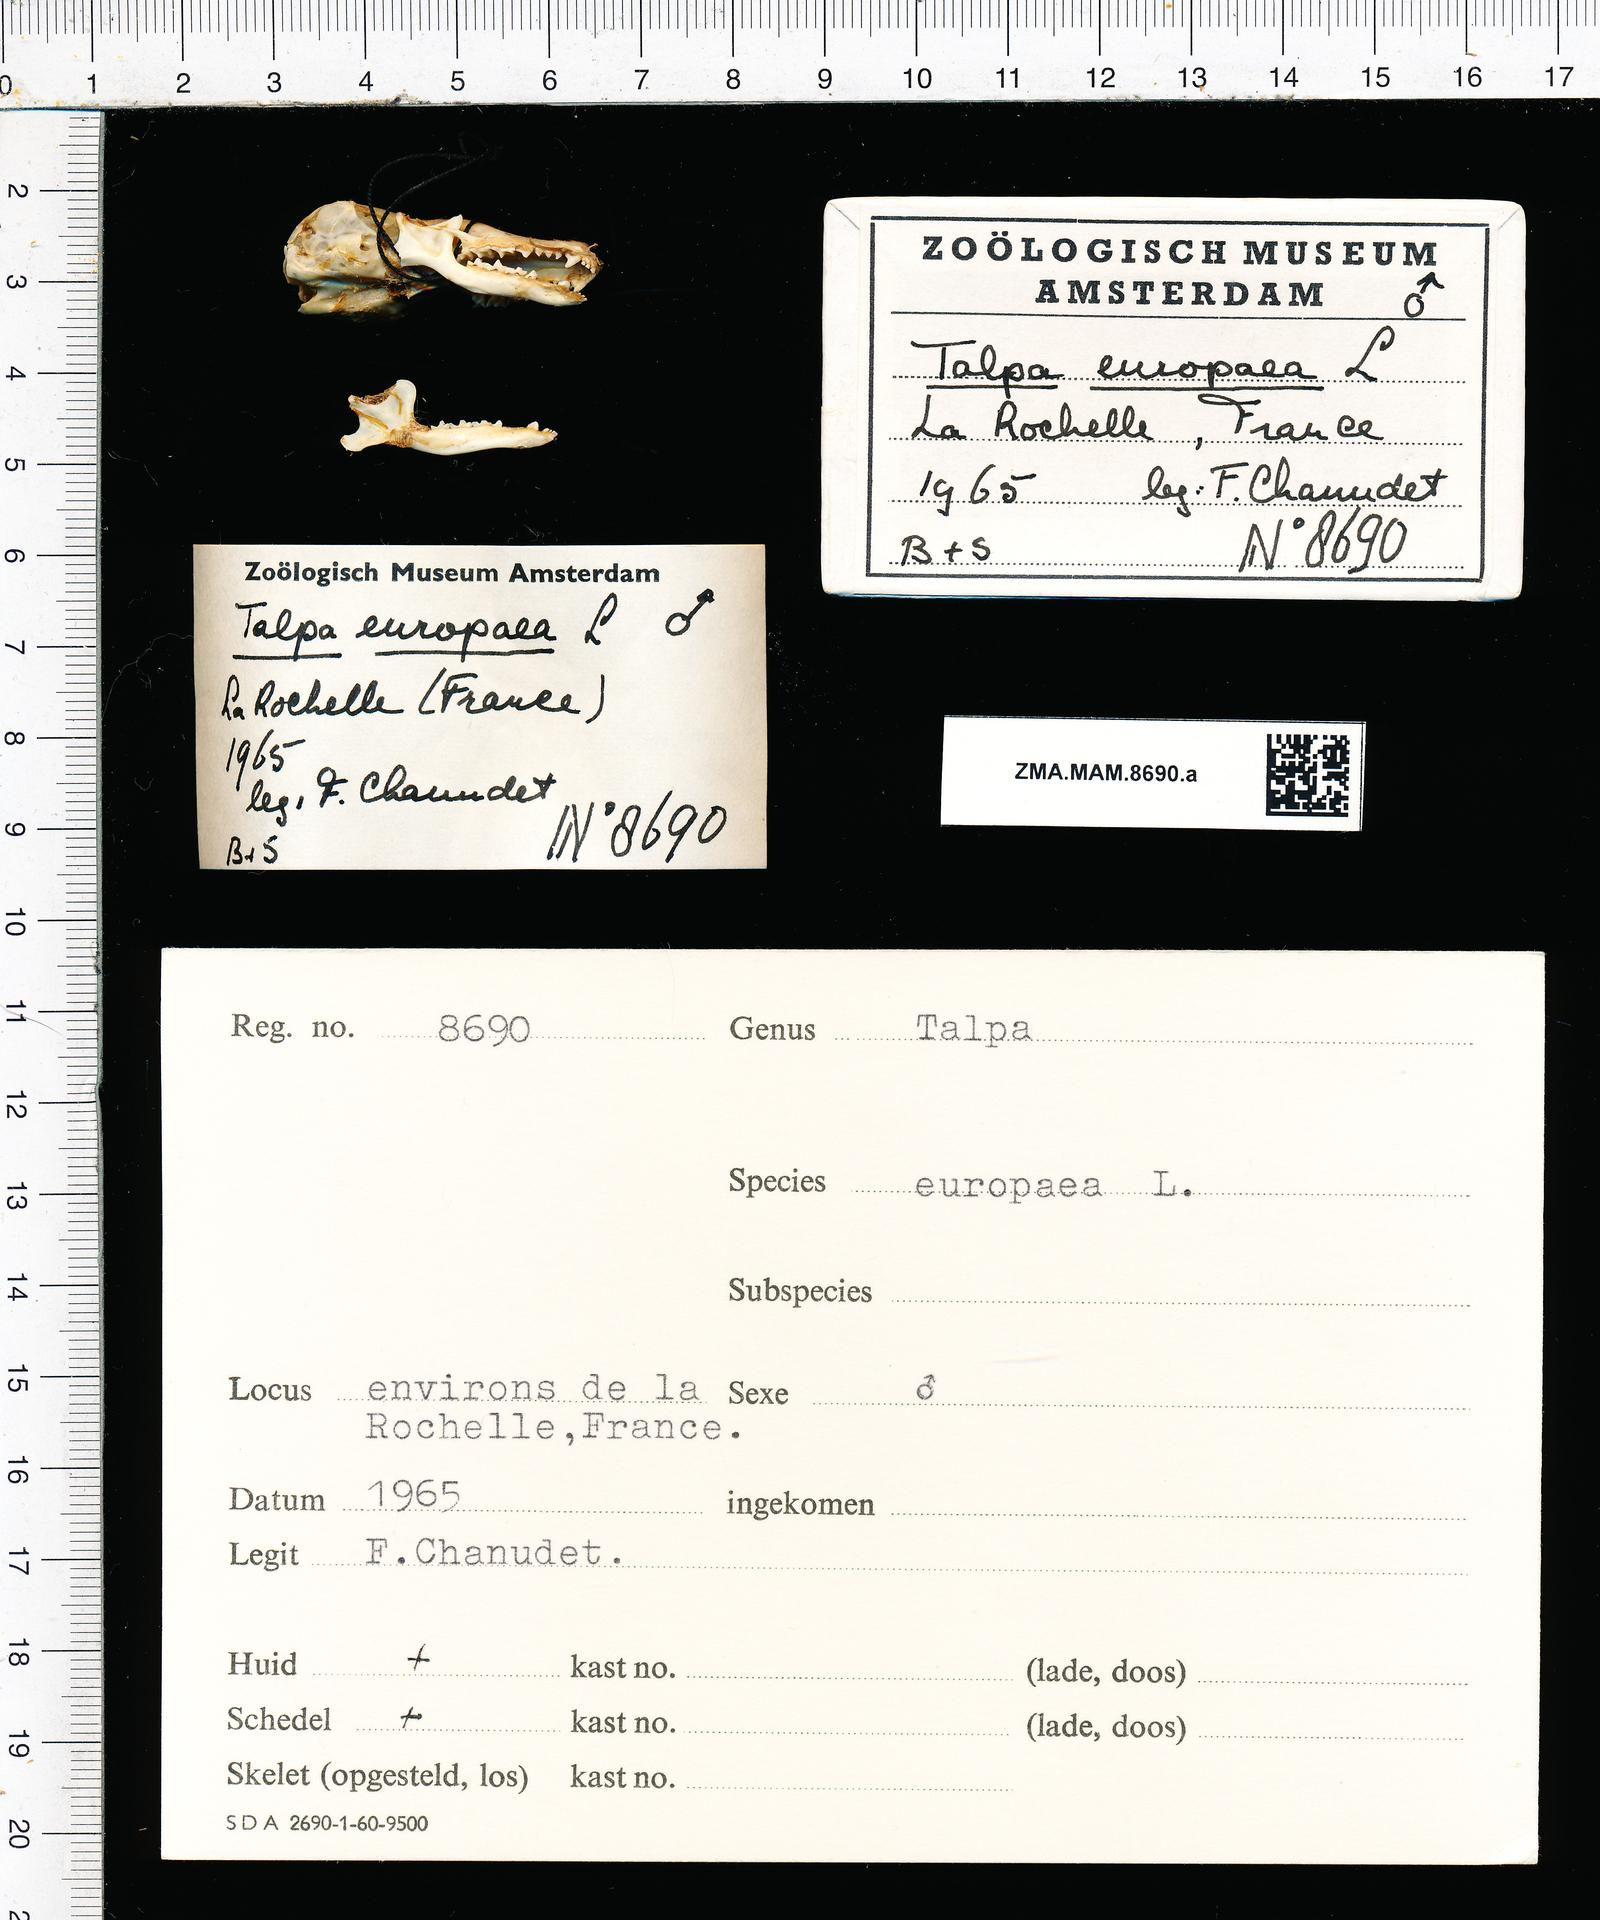 authorship Linnaeus Kind of unit specimen skull Sex male Individual count 1 Country France Locality France, La Rochelle Collection date 01 Jan 1965 through 31